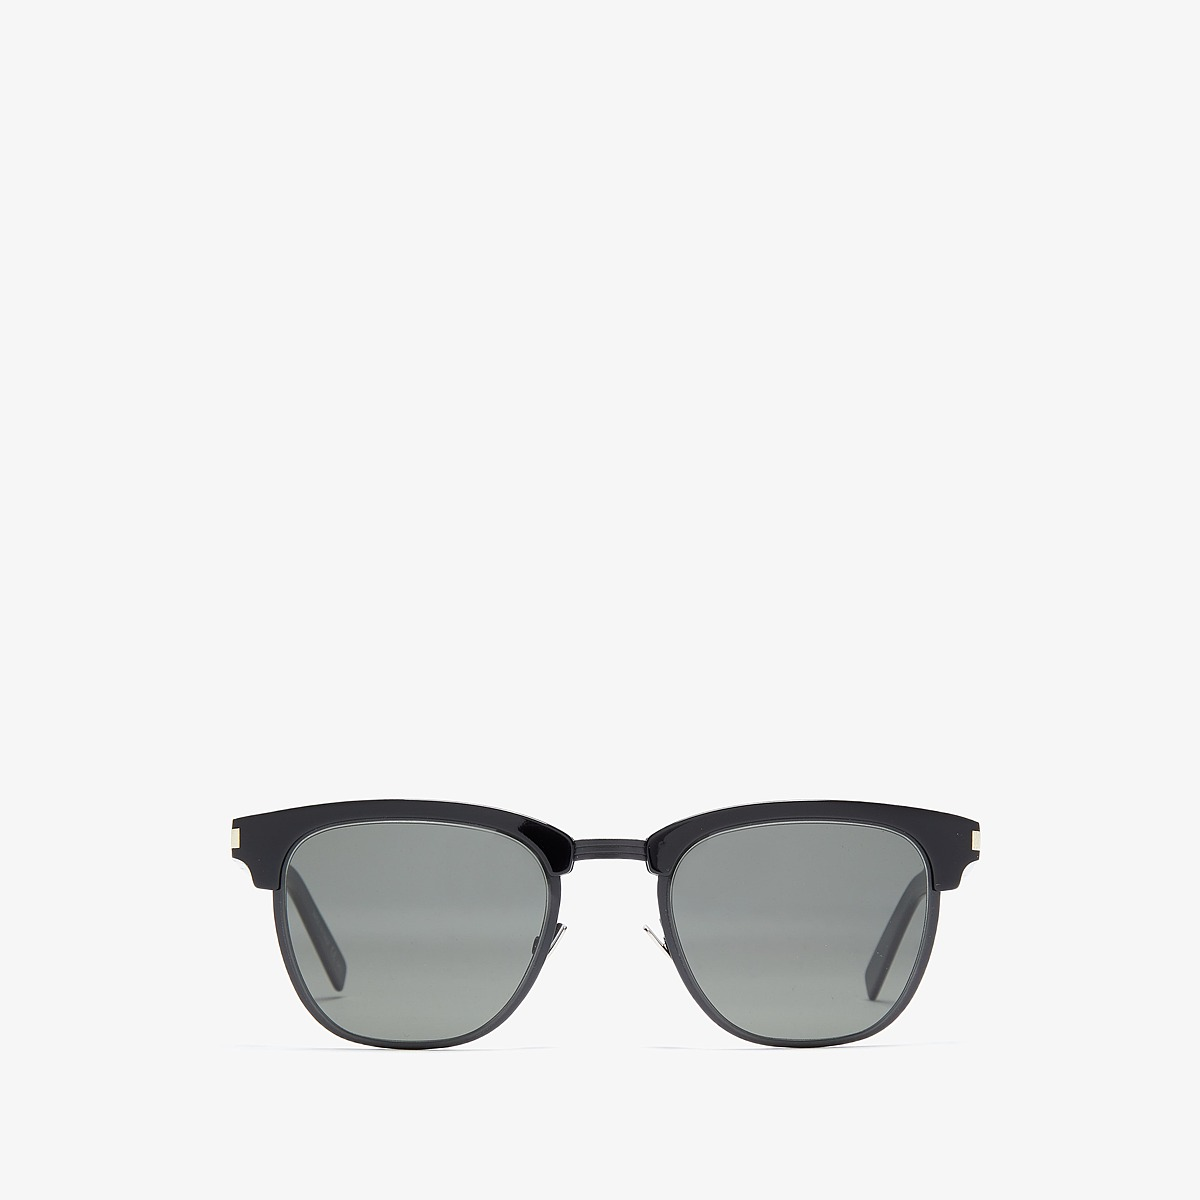 Saint Laurent - SL 108 Slim (Black Matte Black/Grey) Fash...